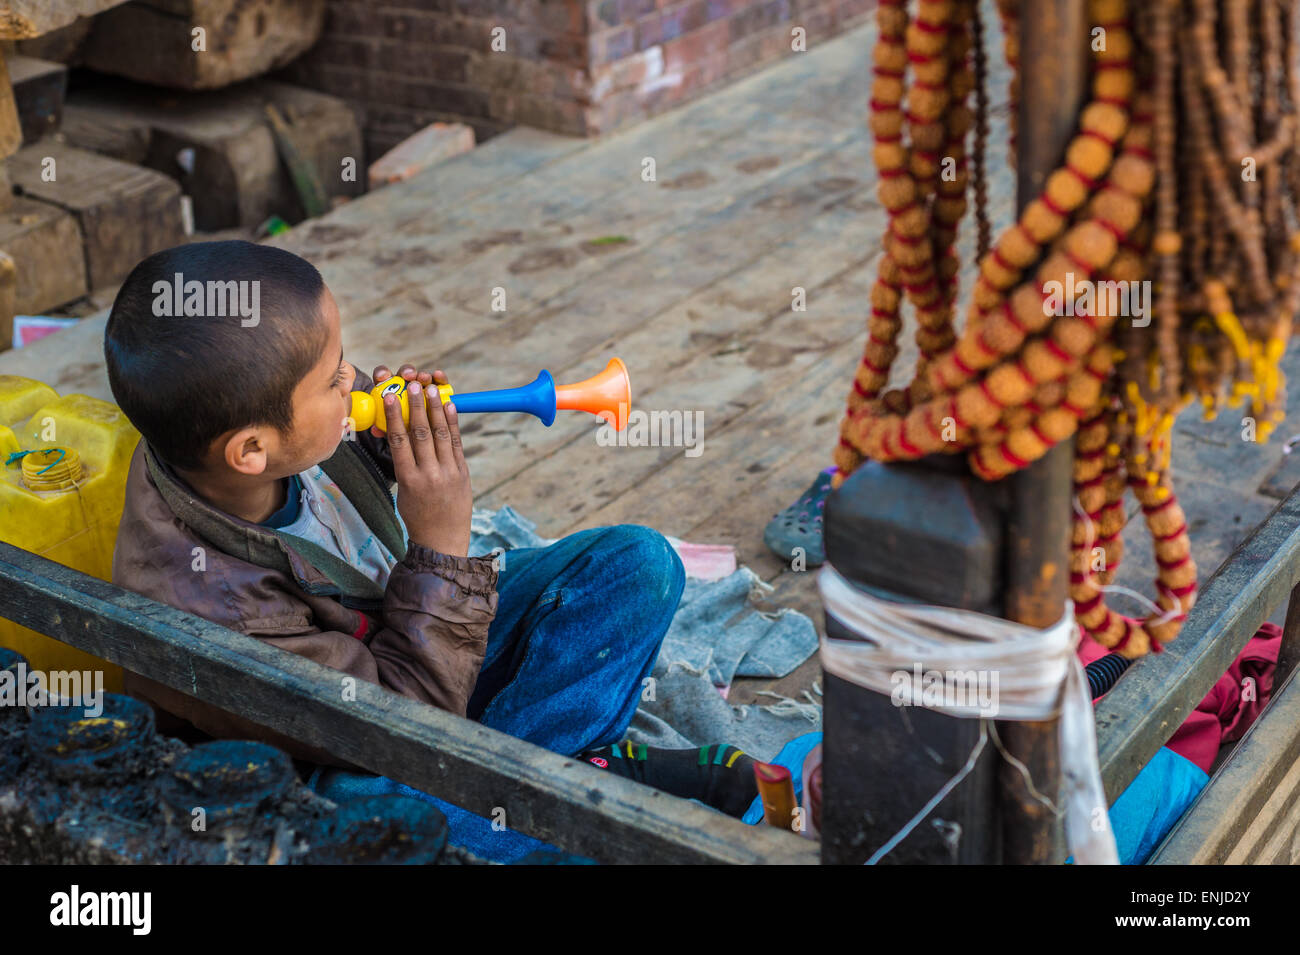 Nepali child playing with a trumpet toy - Stock Image